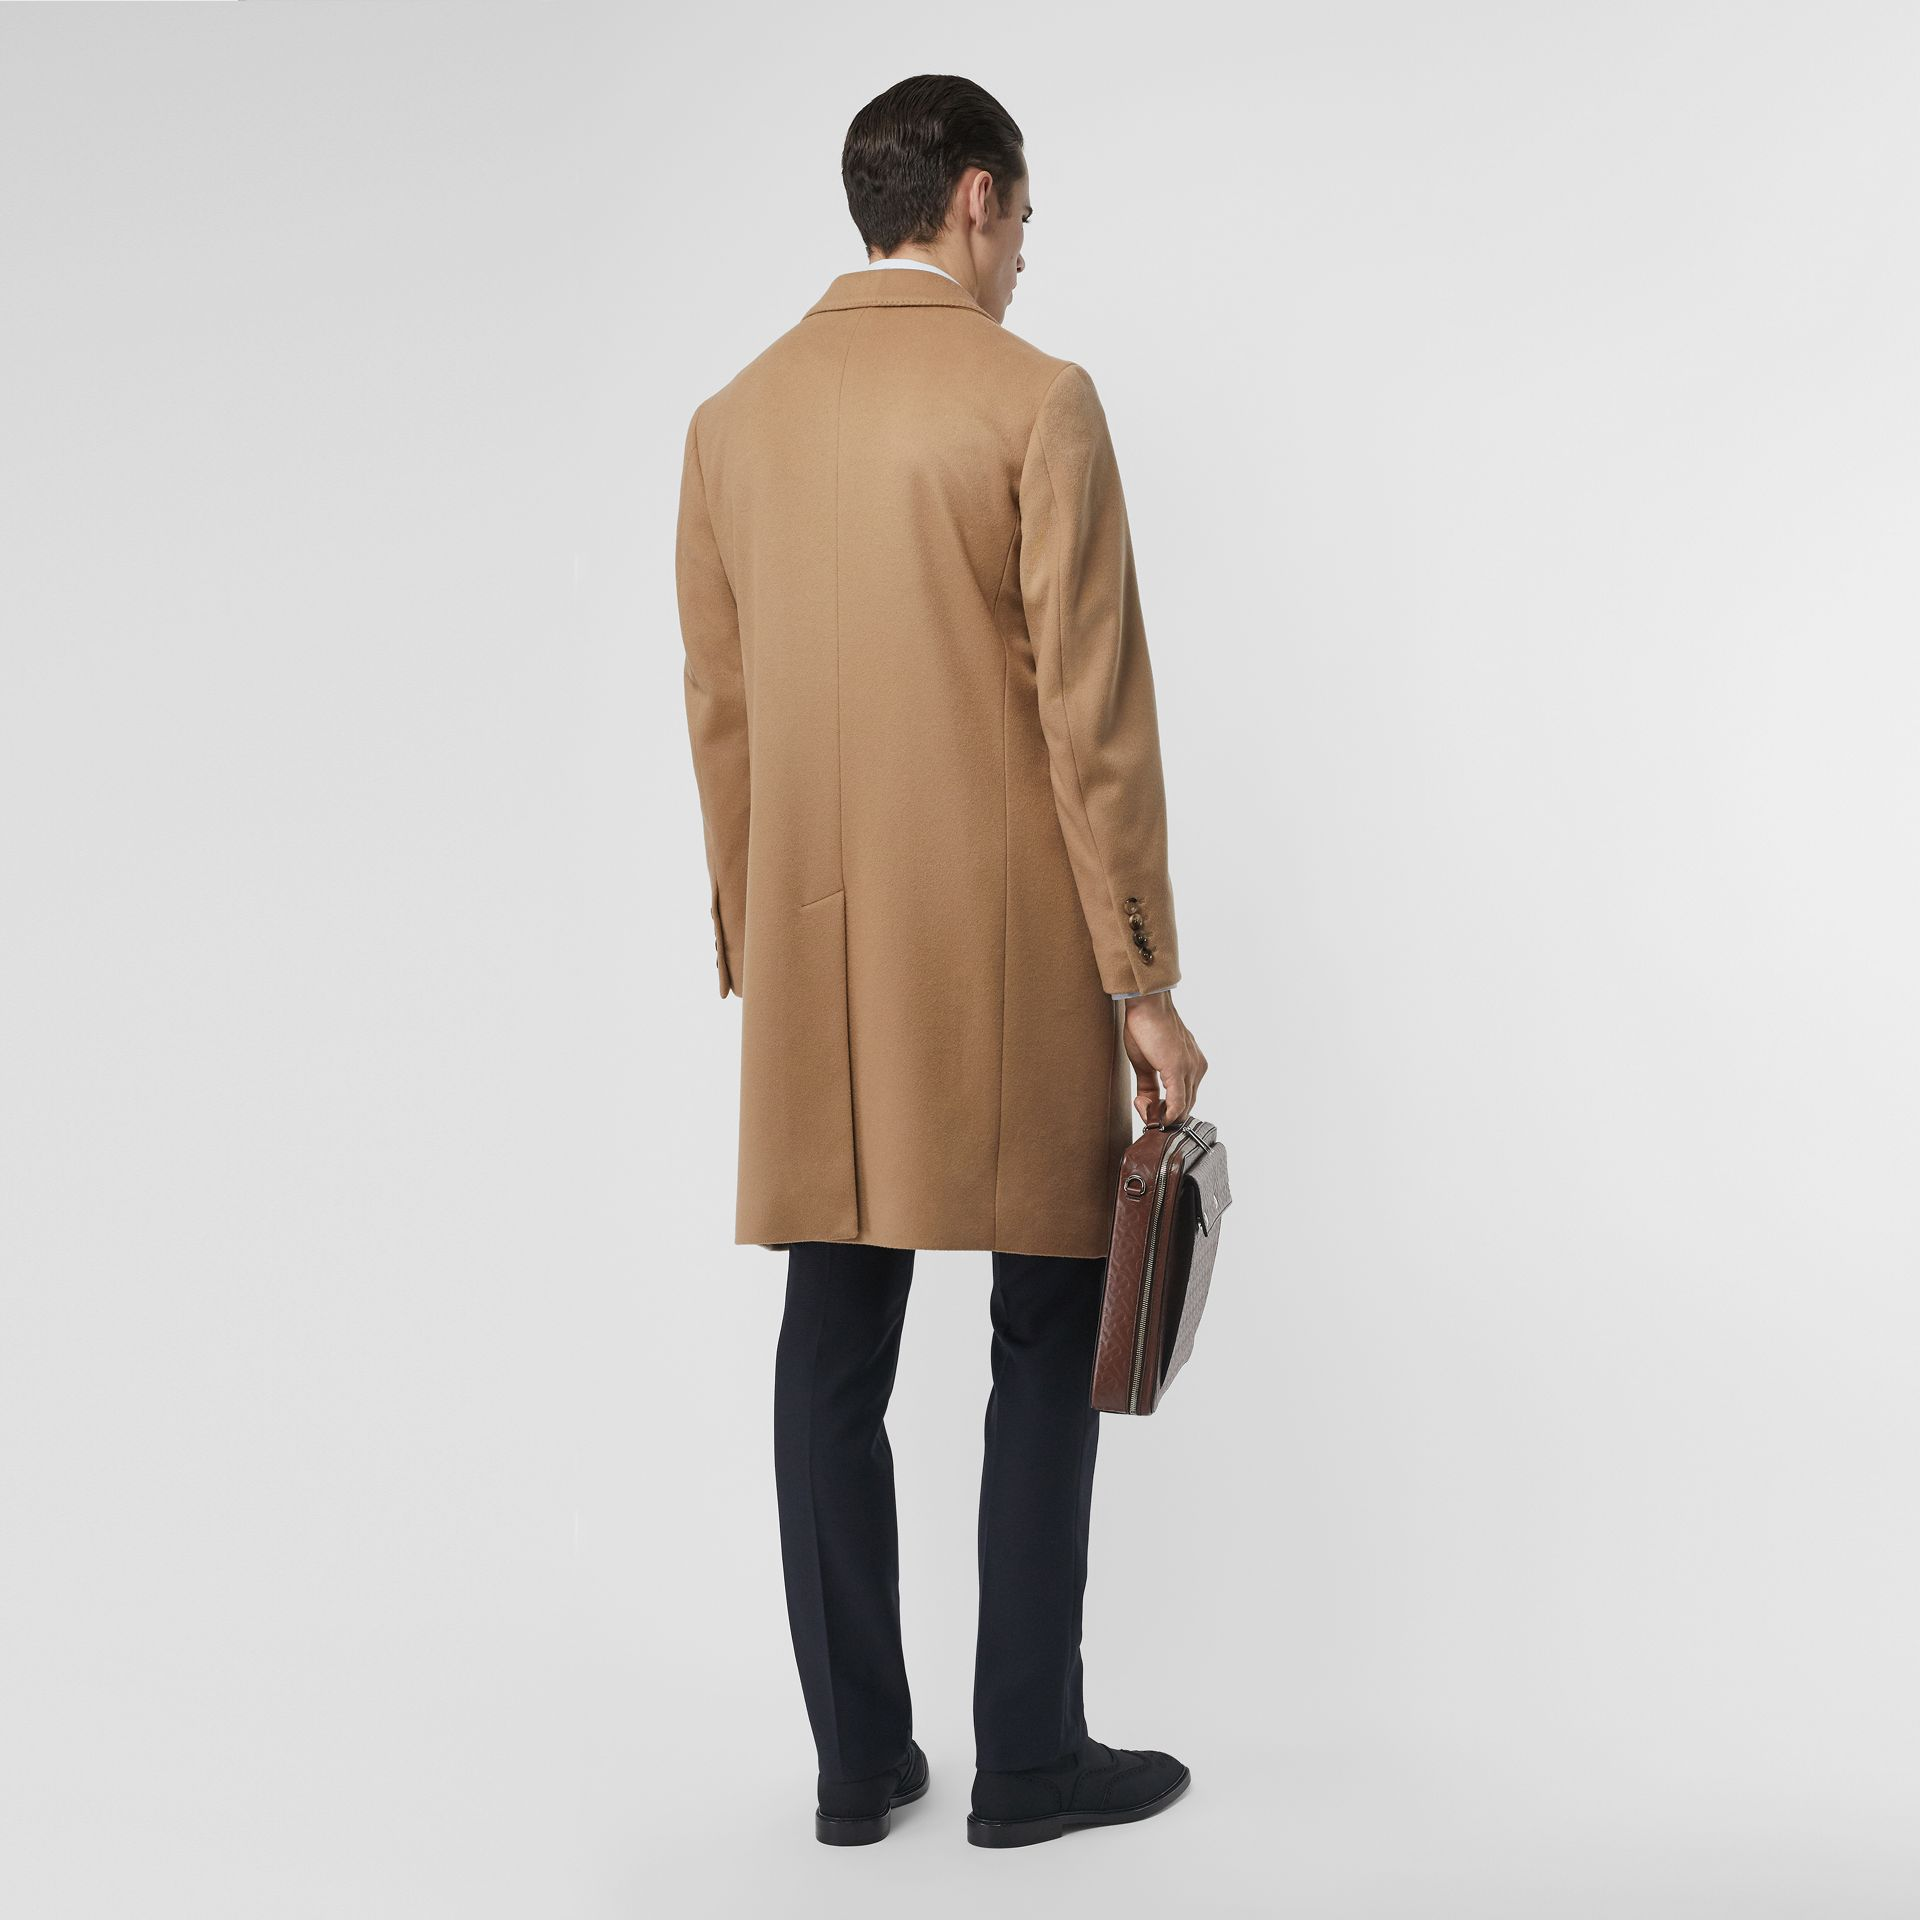 Wool Cashmere Tailored Coat in Camel - Men | Burberry Singapore - gallery image 2